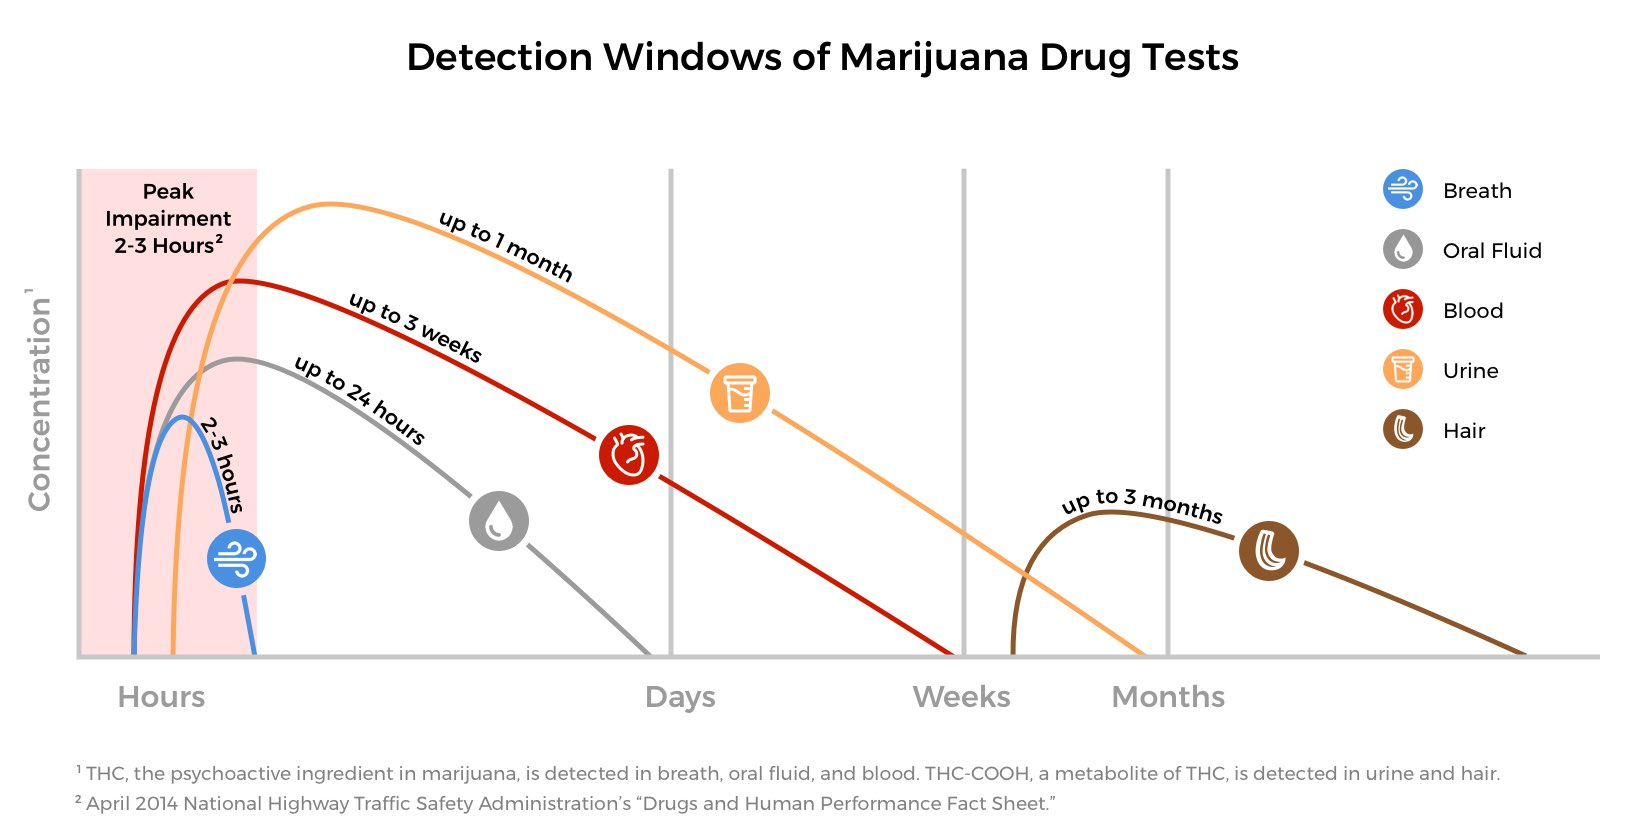 graph of detection windows for various marijuana drug tests